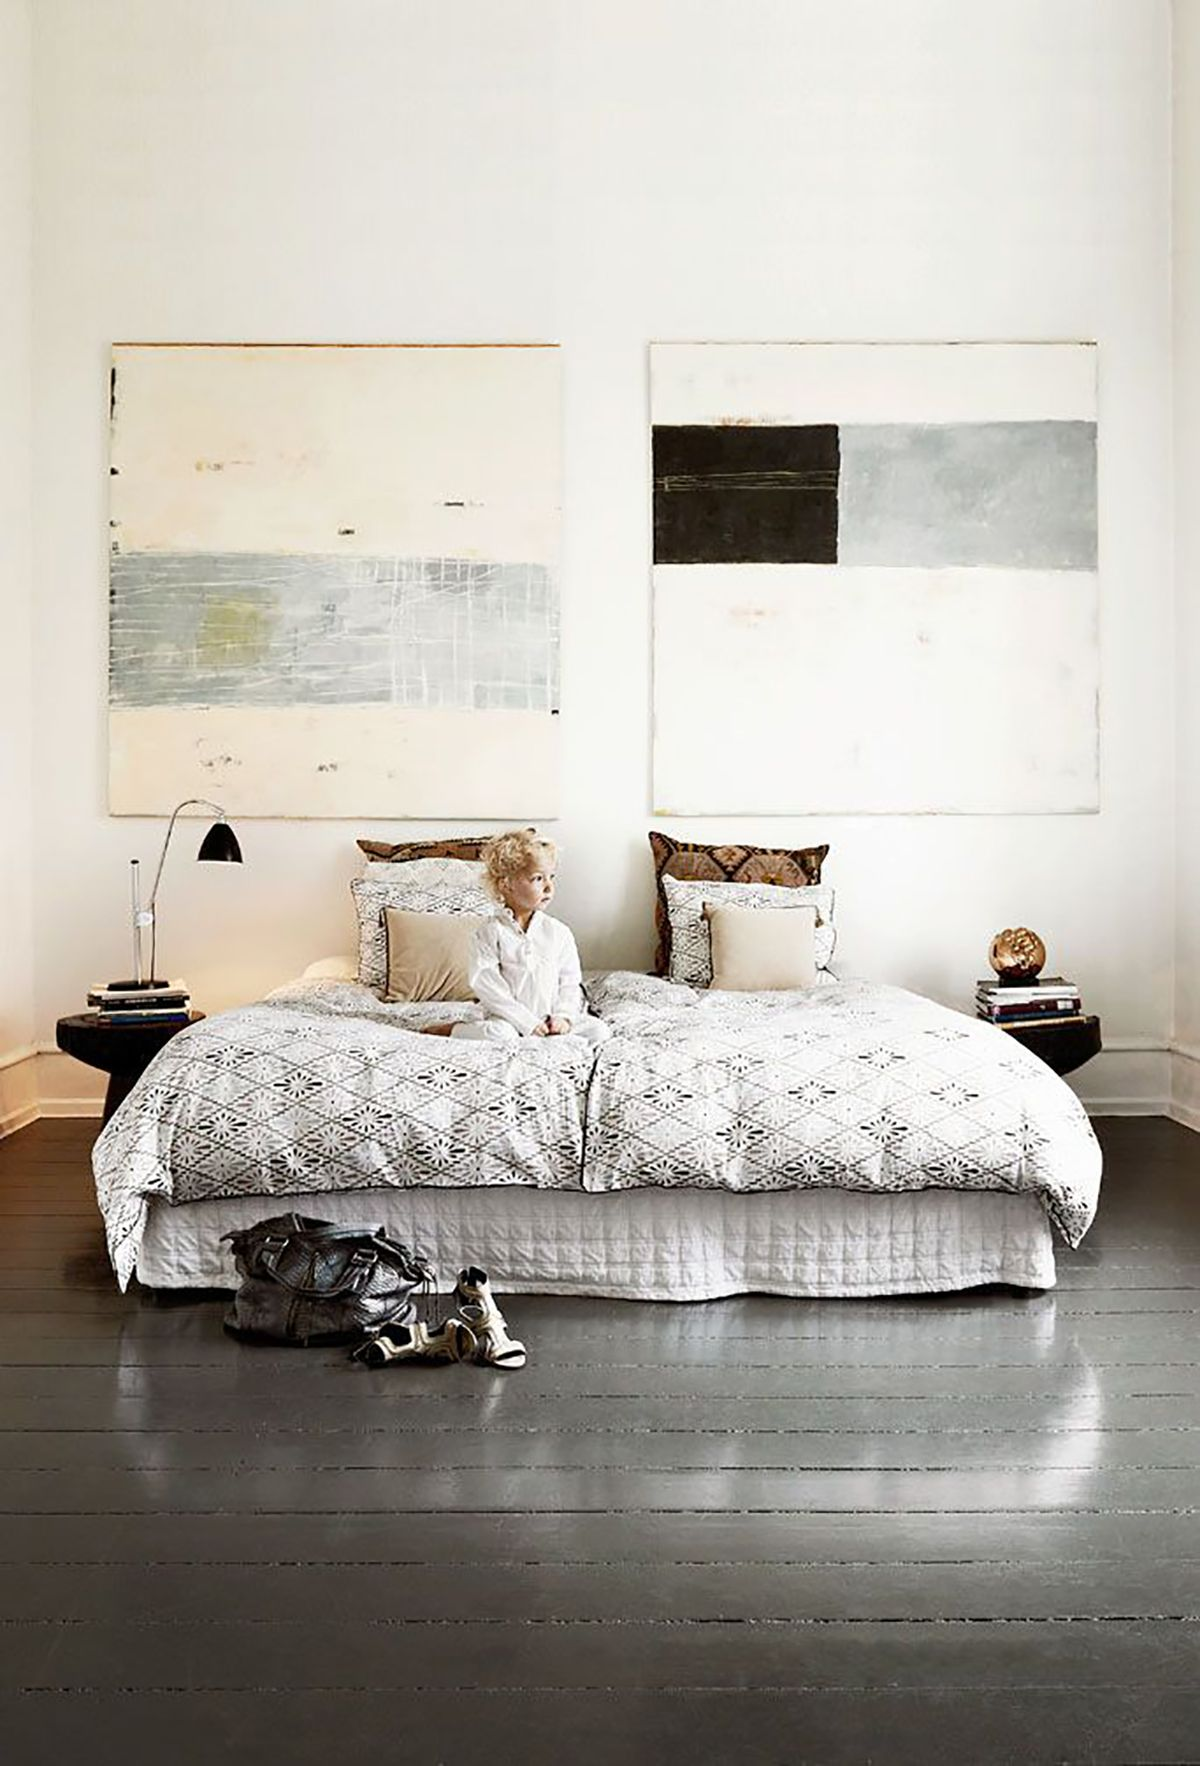 Interior Design Tips And Tricks To Decorate Like A Professional ...